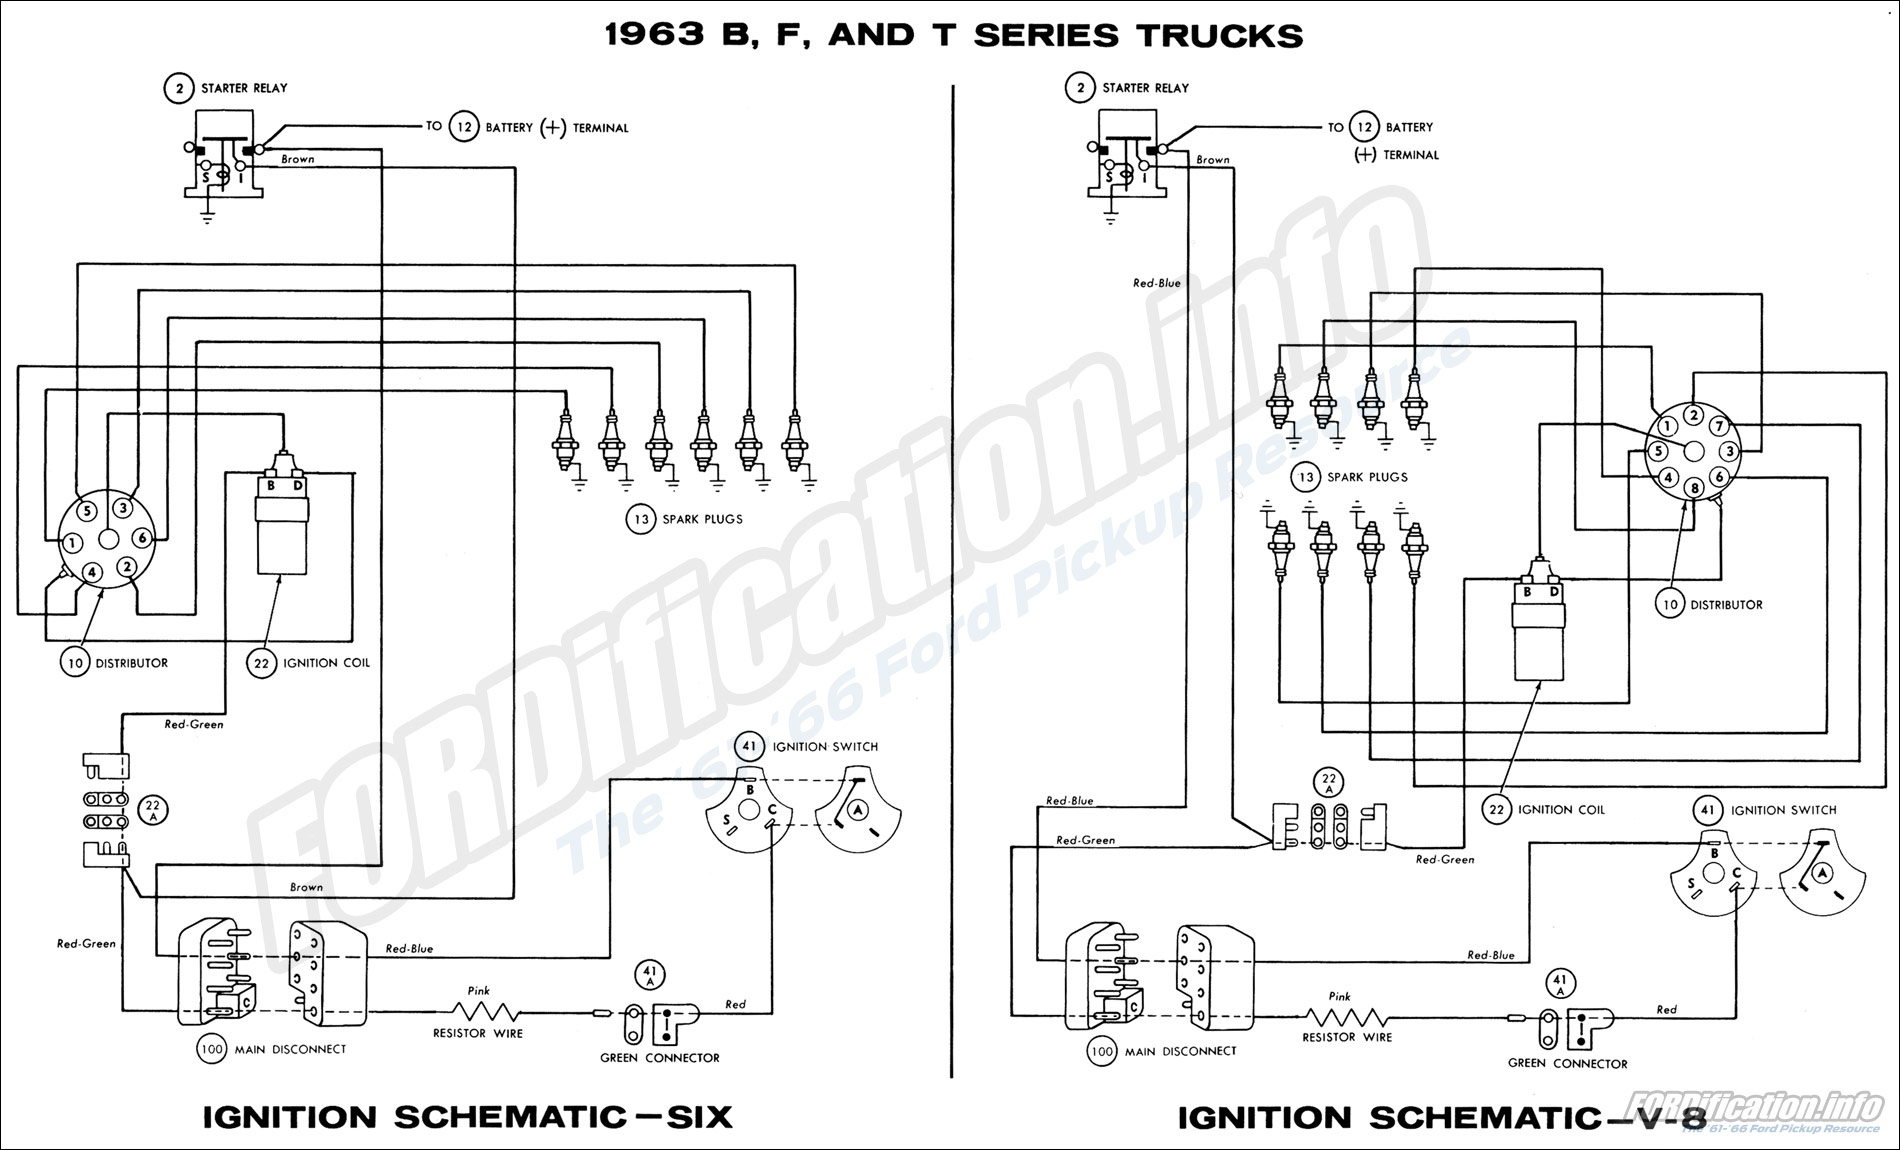 1963 ford truck wiring diagrams fordification info the '61 '66 ford ignition resistor wire 1963 b, f, and t series trucks ignition schematics six and v8